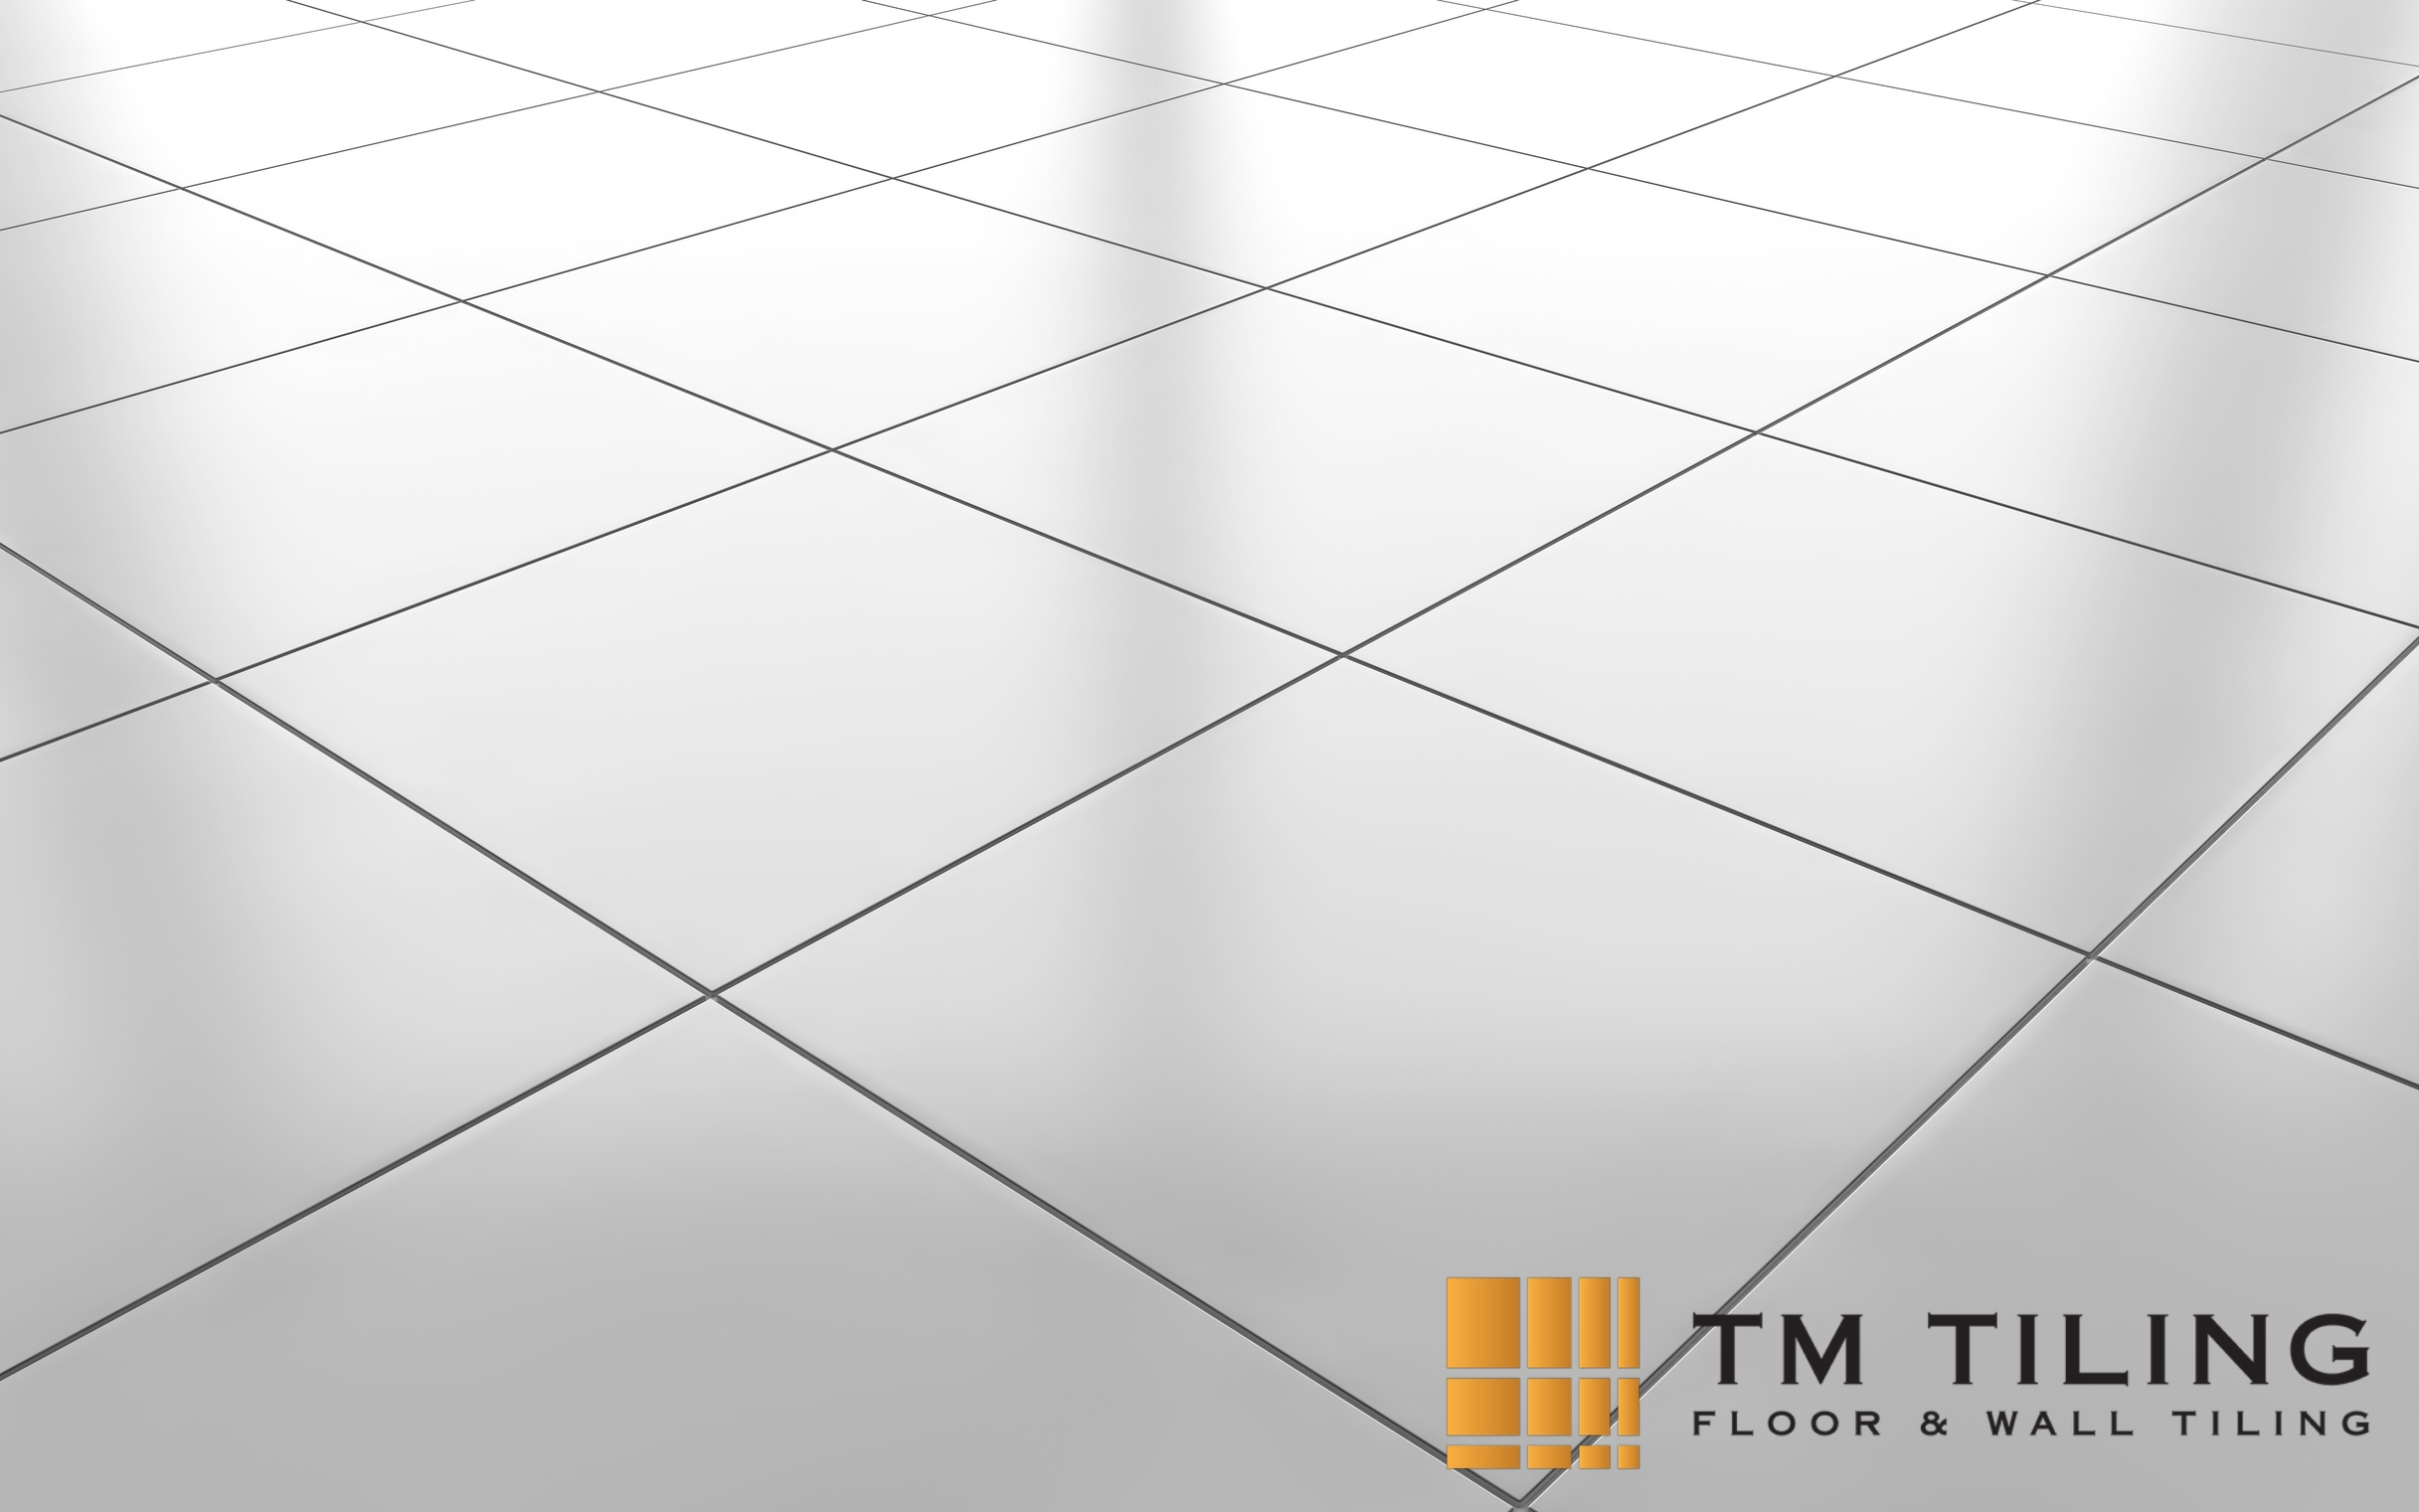 homogeneous-tiles-flooring-tm-tiling-singapore_wm.jpg